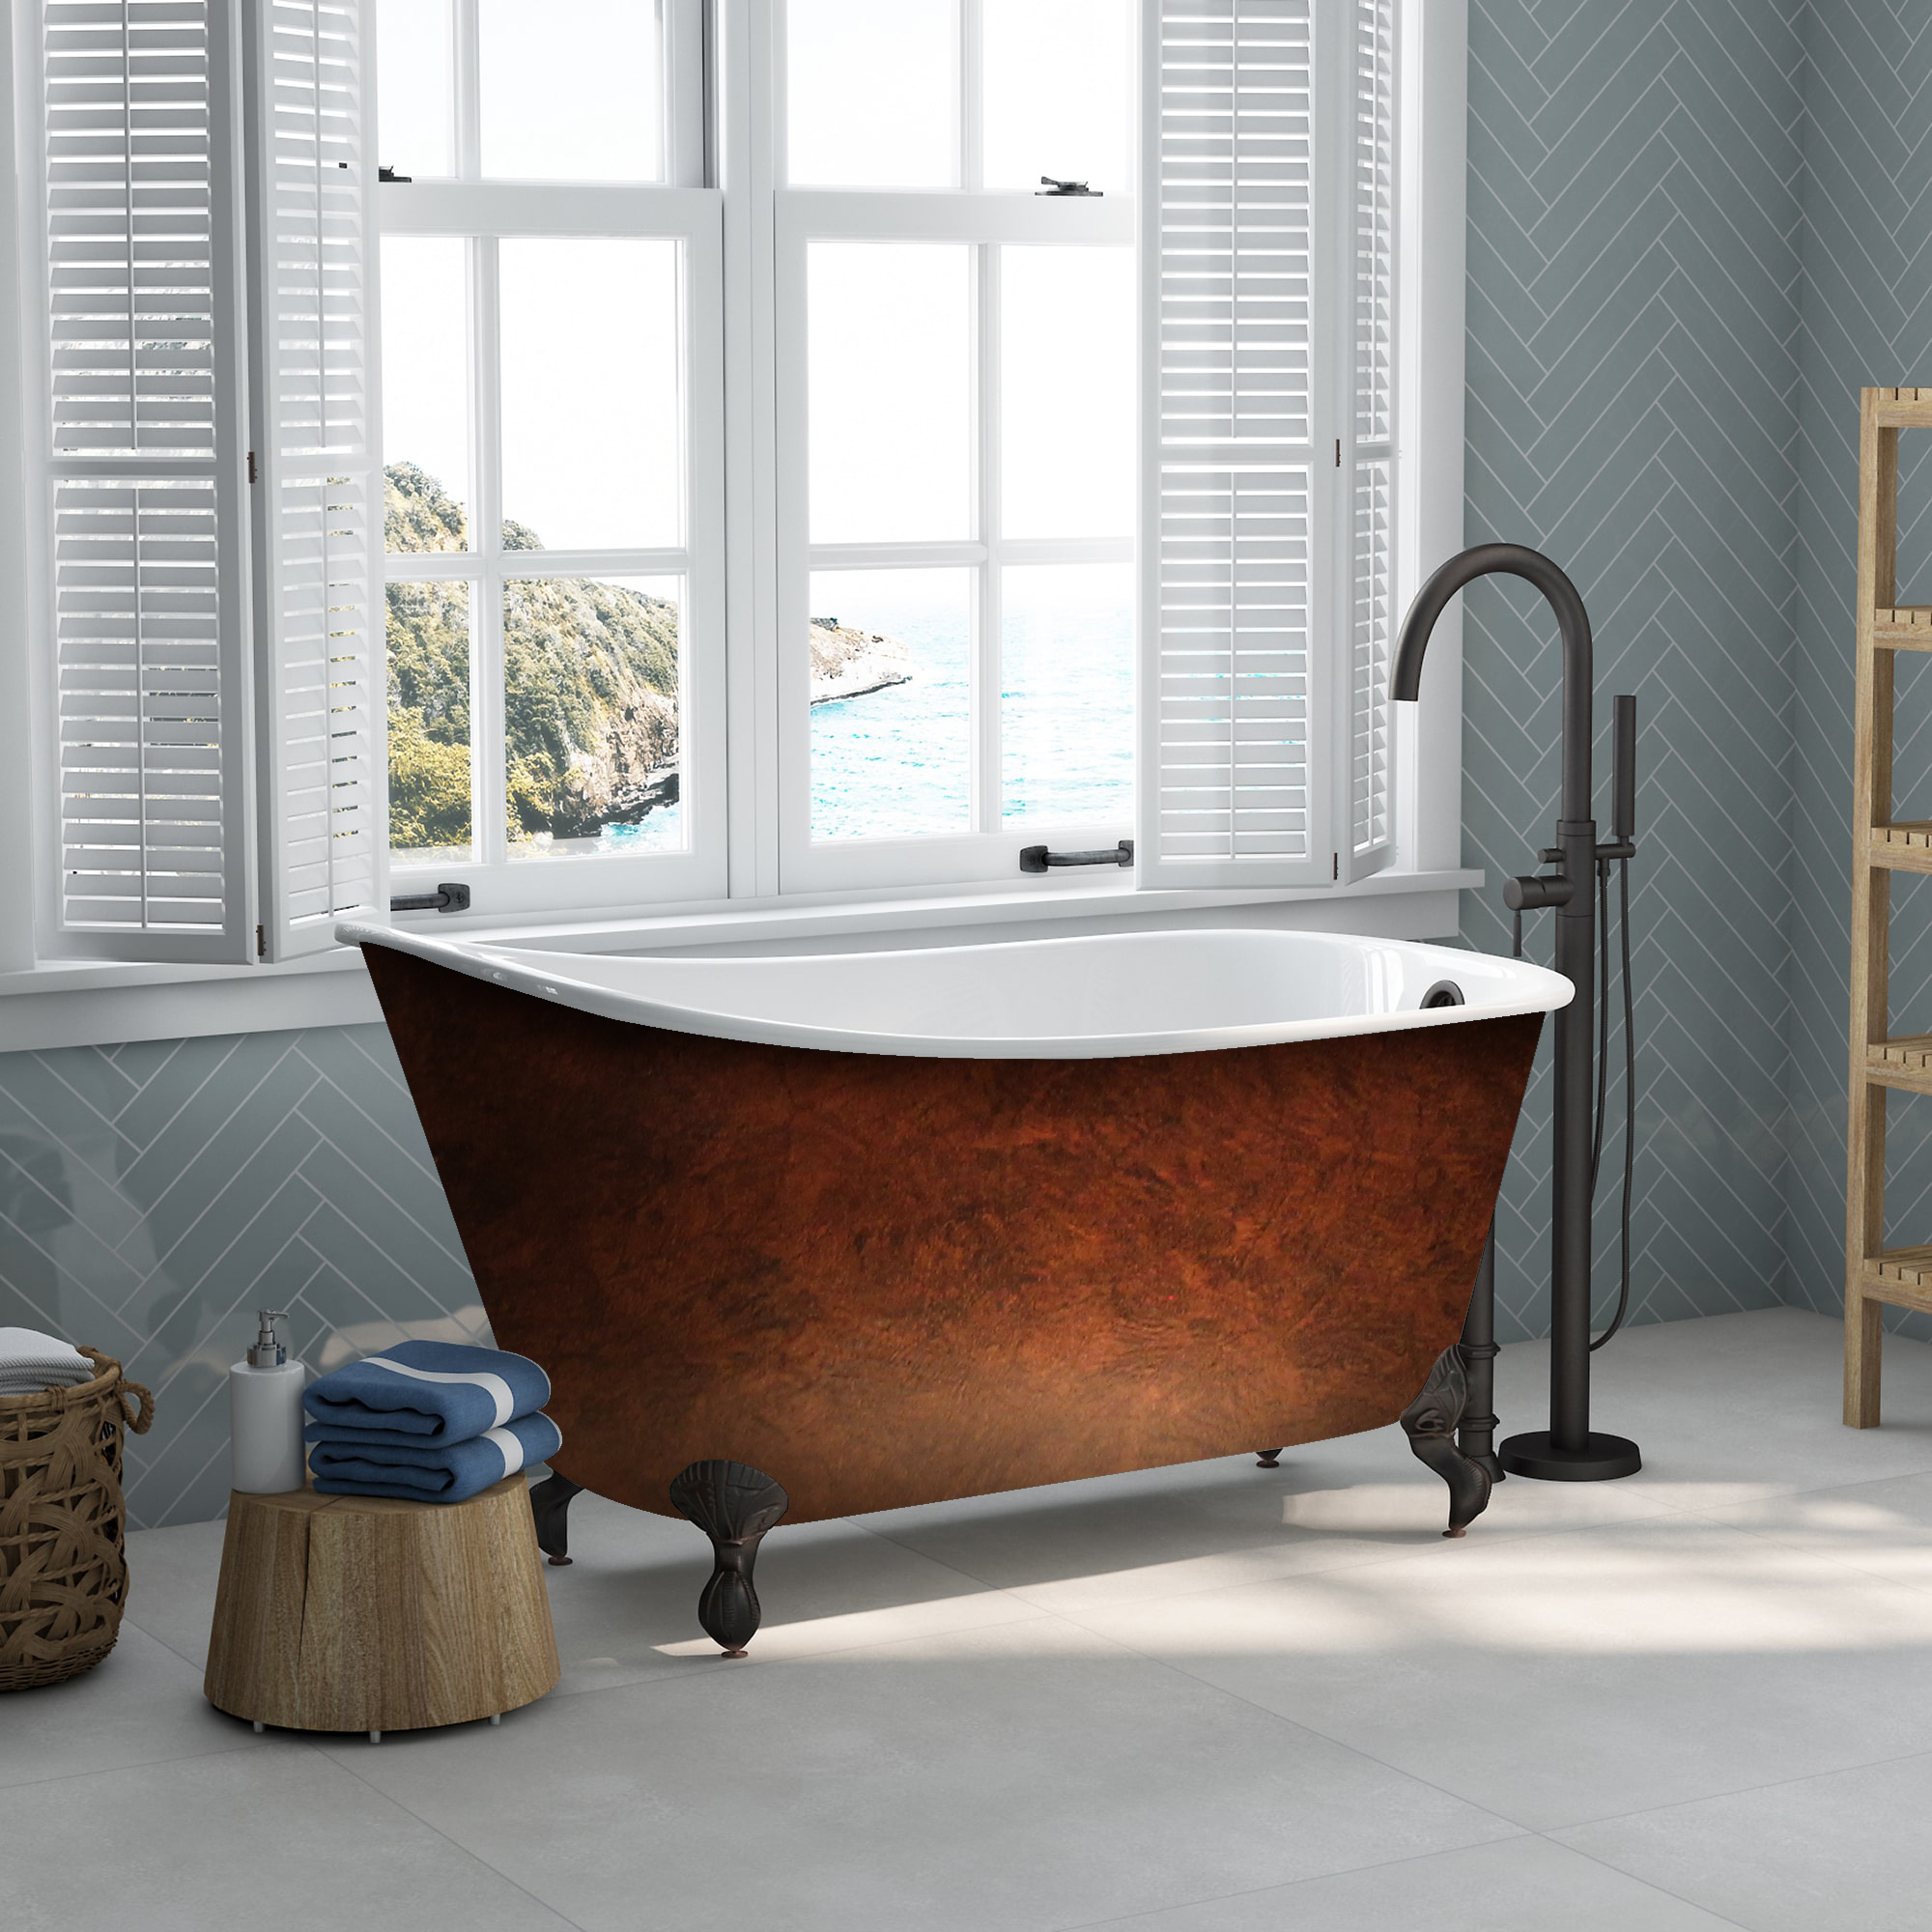 Cast Iron, Clawfoot, Swedish Slipper Tub, Faux Copper Bronze Finish,